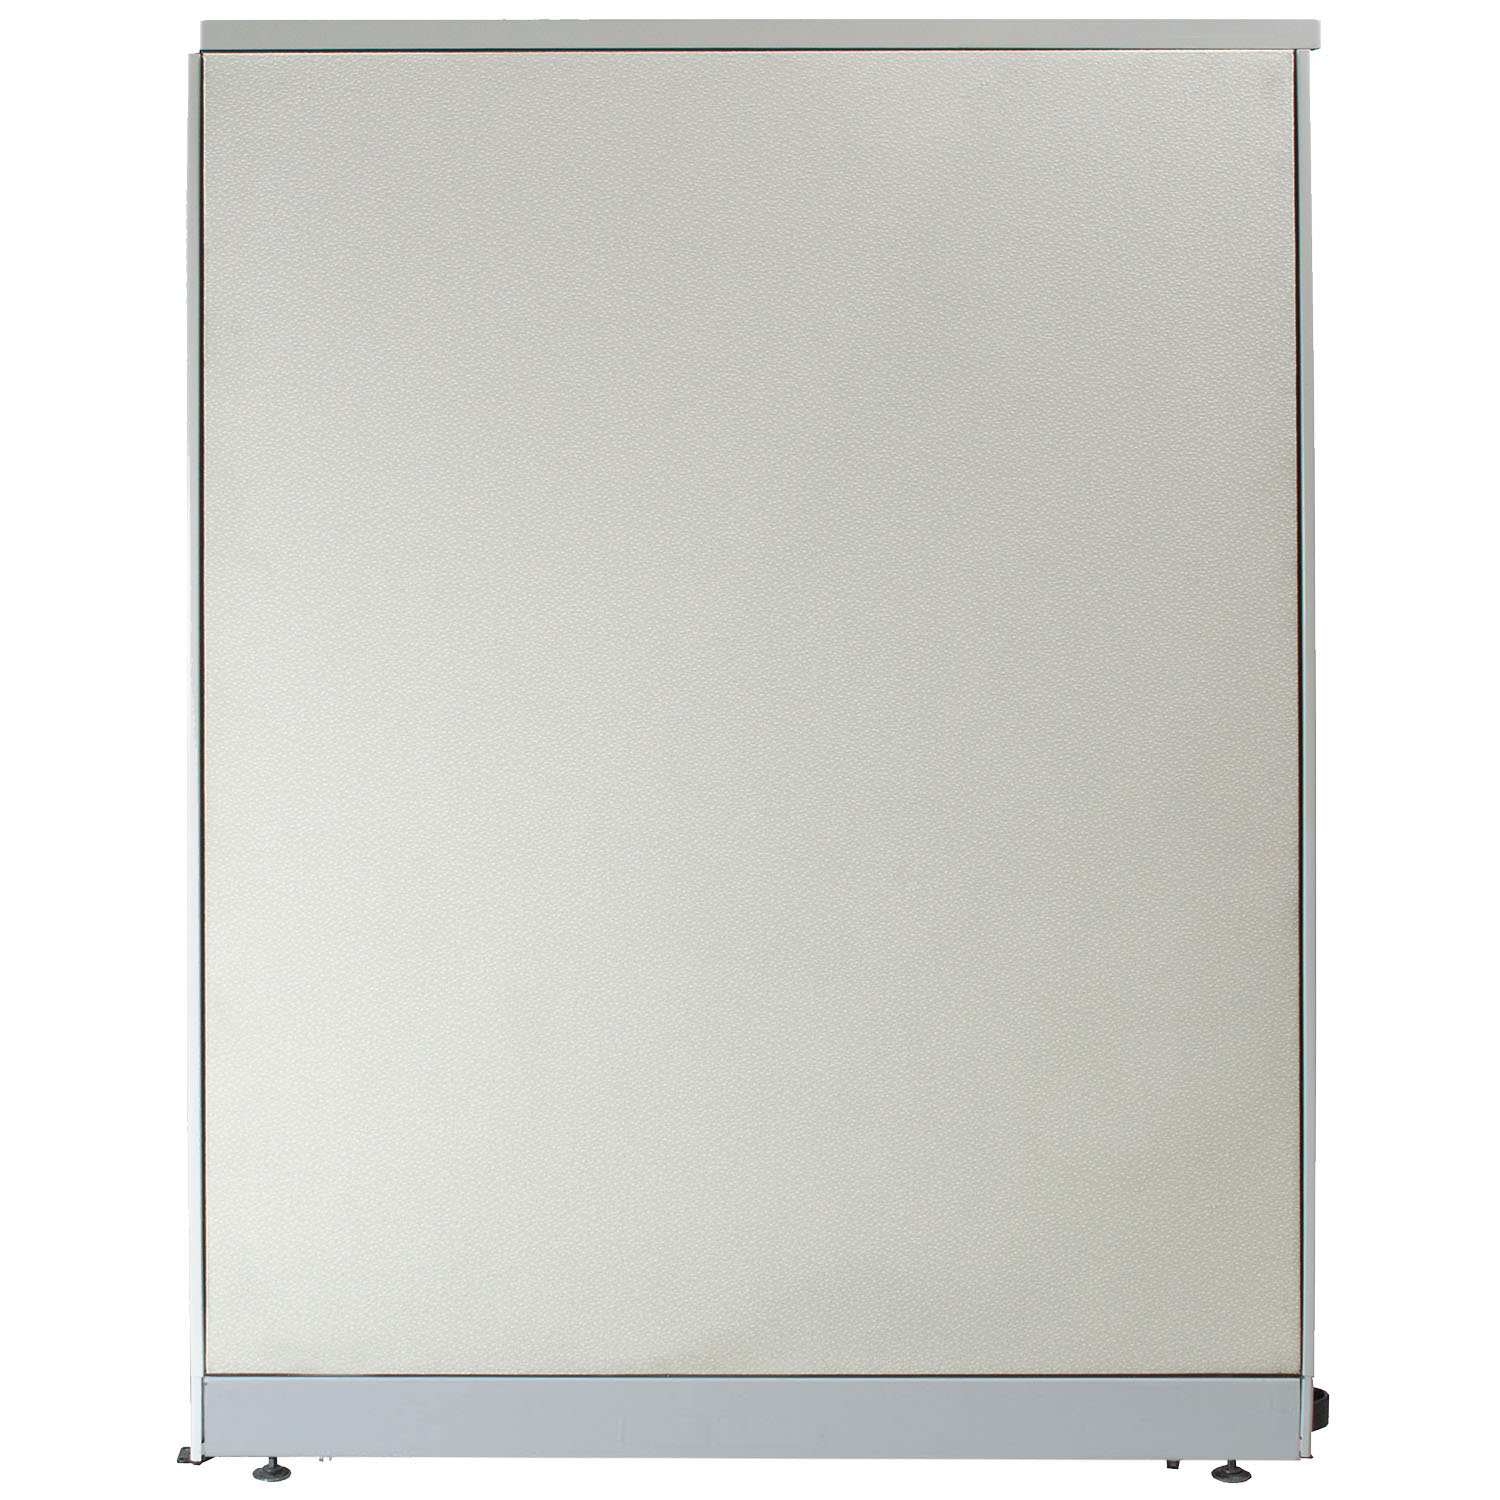 efile cabinet steelcase used cubicle panel 42 215 65 light gray national 15138